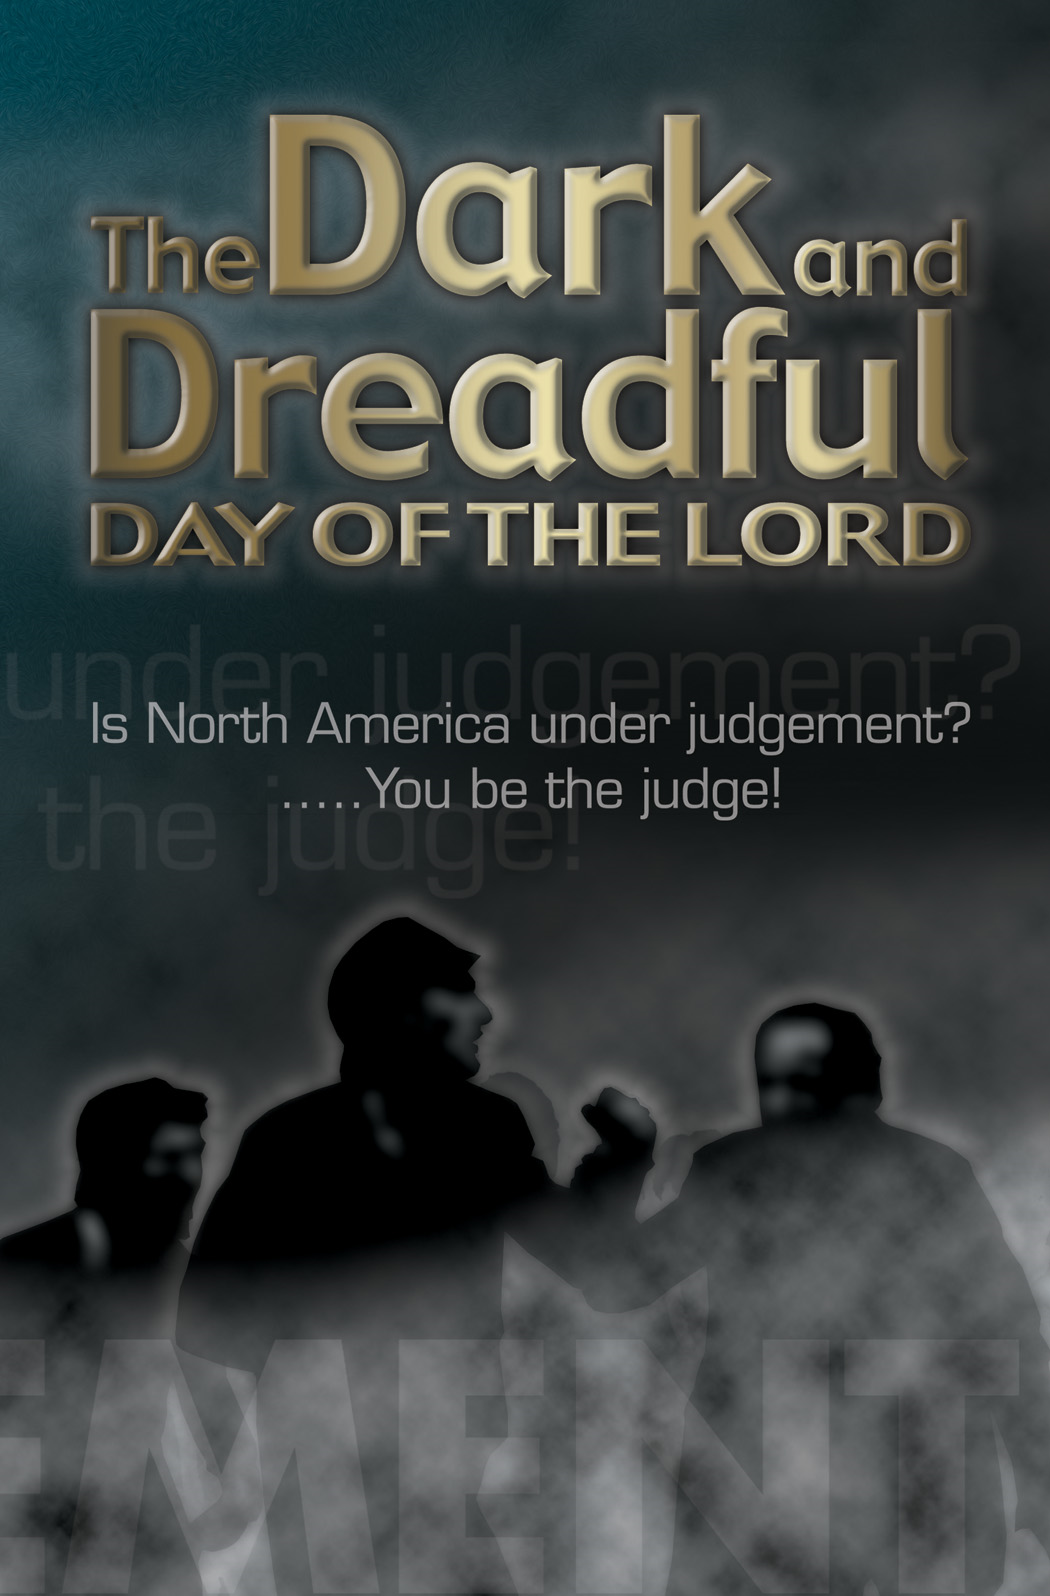 The Dark and Dreadful Day of the Lord